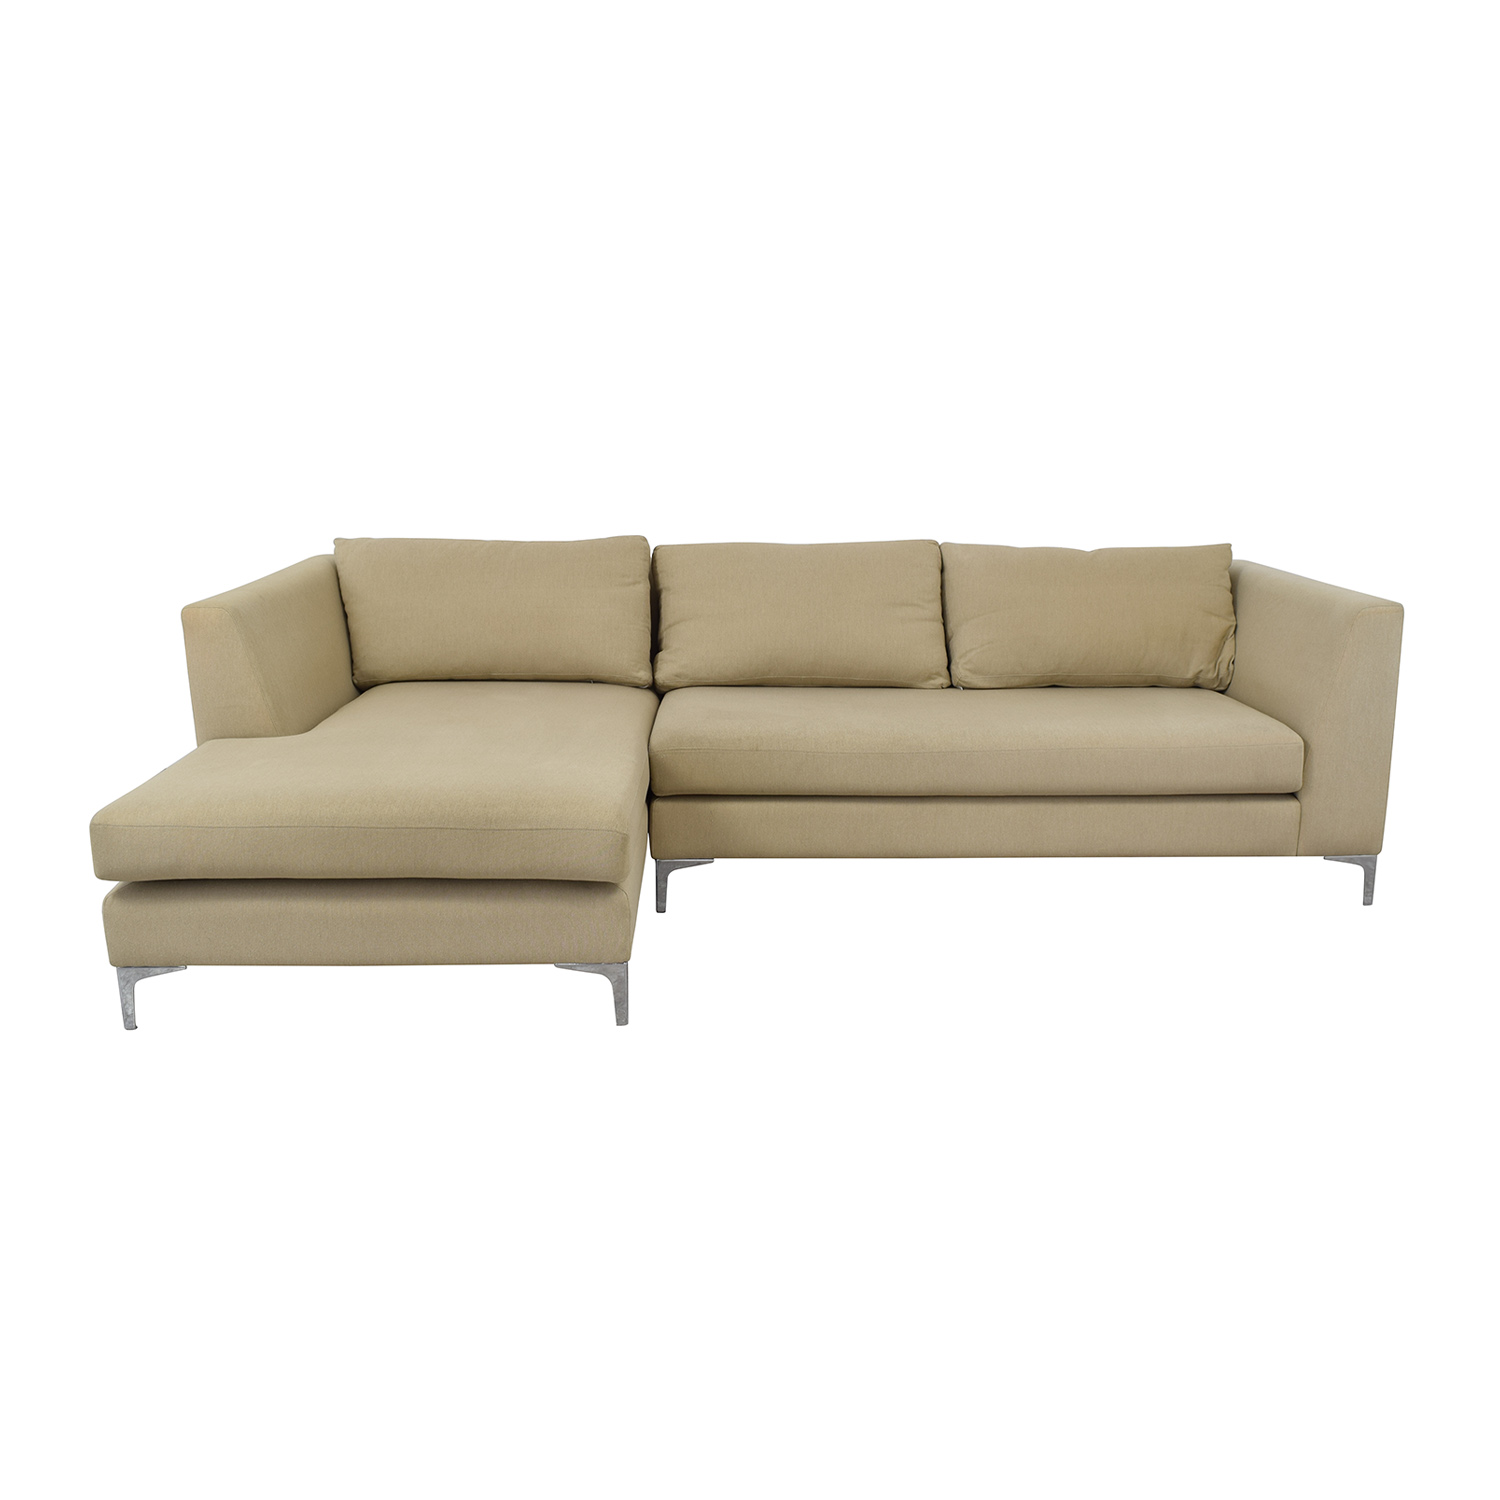 buy ABC Carpet & Home Modern Condo Sectional Sofa ABC Carpet & Home Sectionals